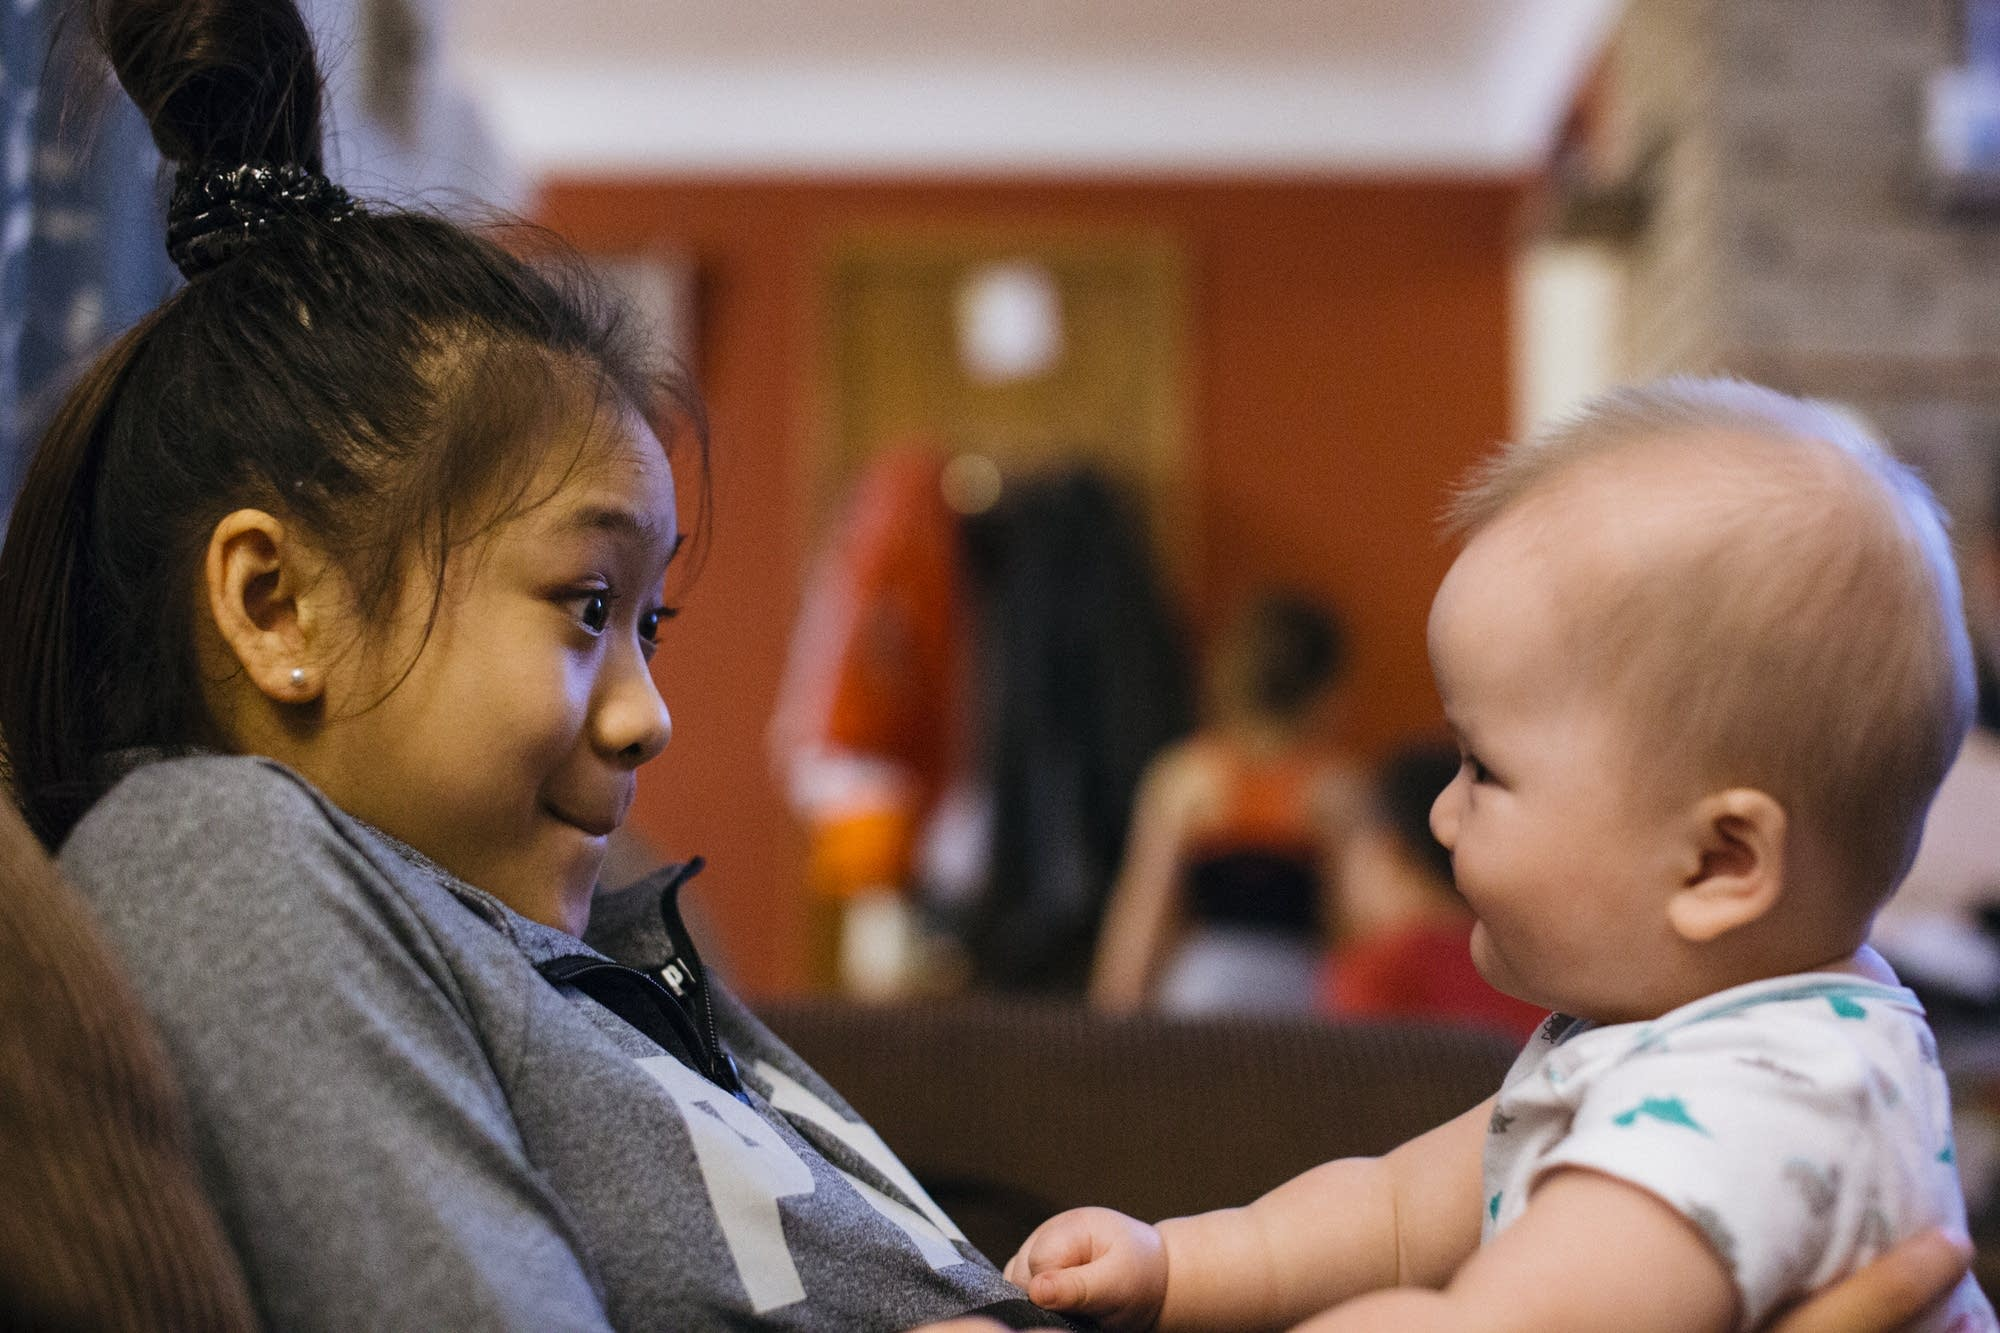 Sunisa Lee plays with her little brother.